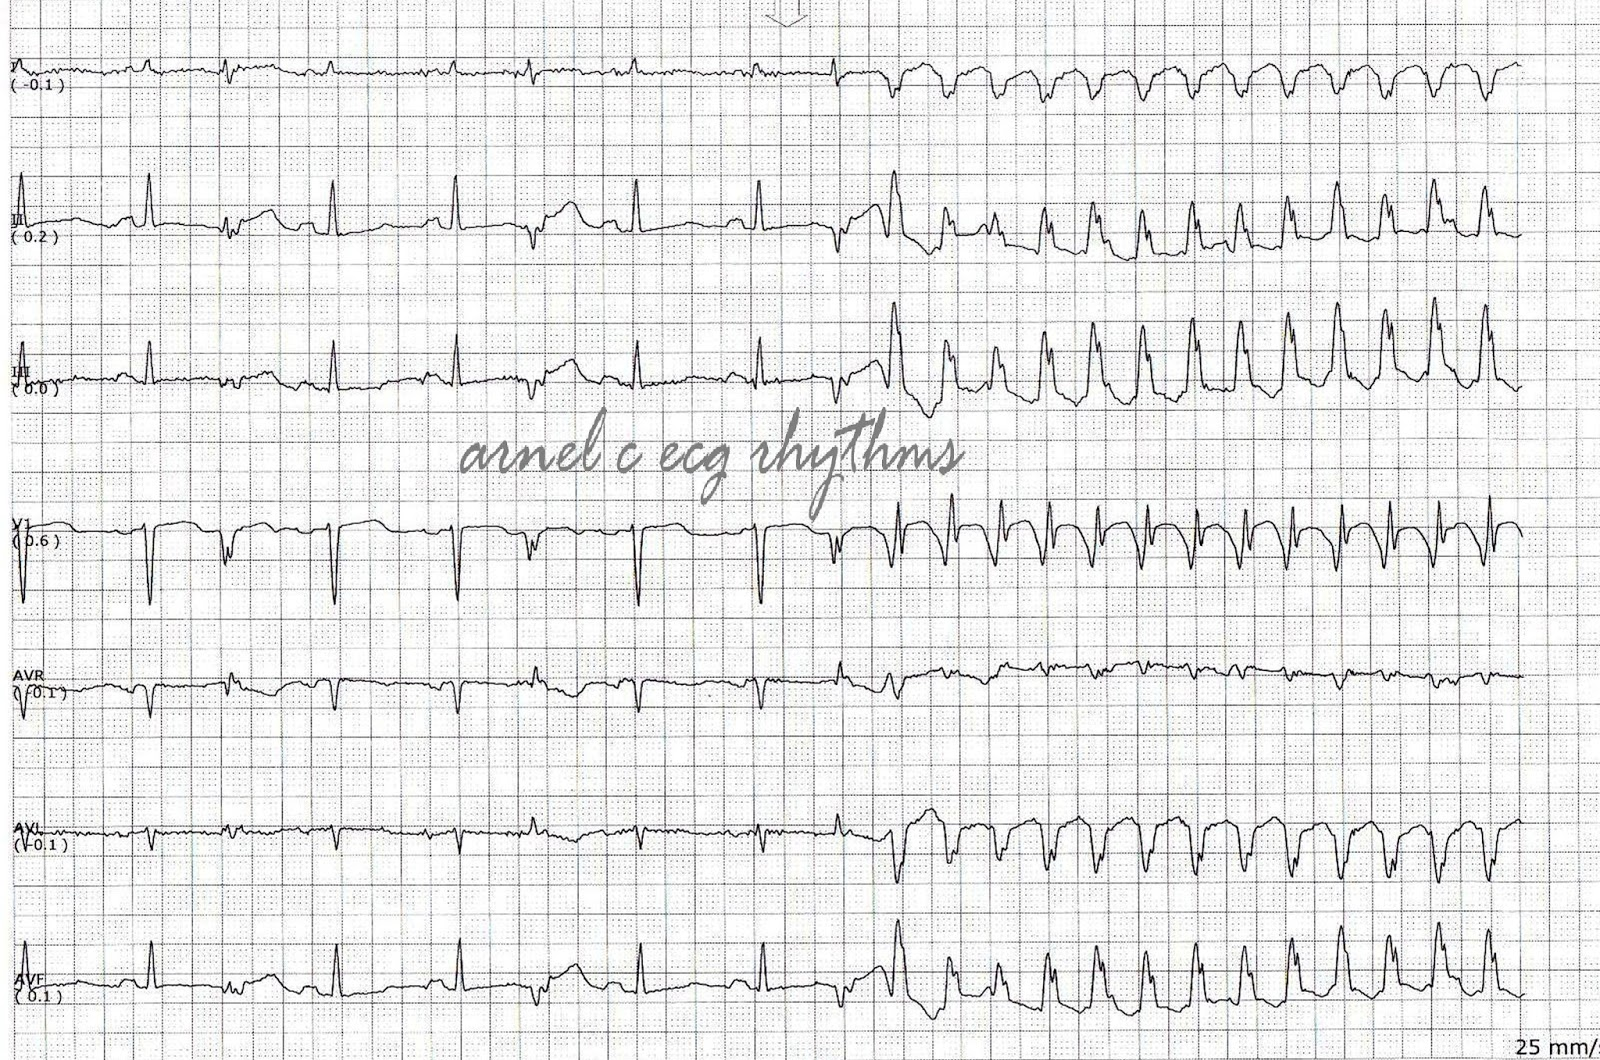 Ecg Rhythms Antitachycardia Pacing Aicd Firing